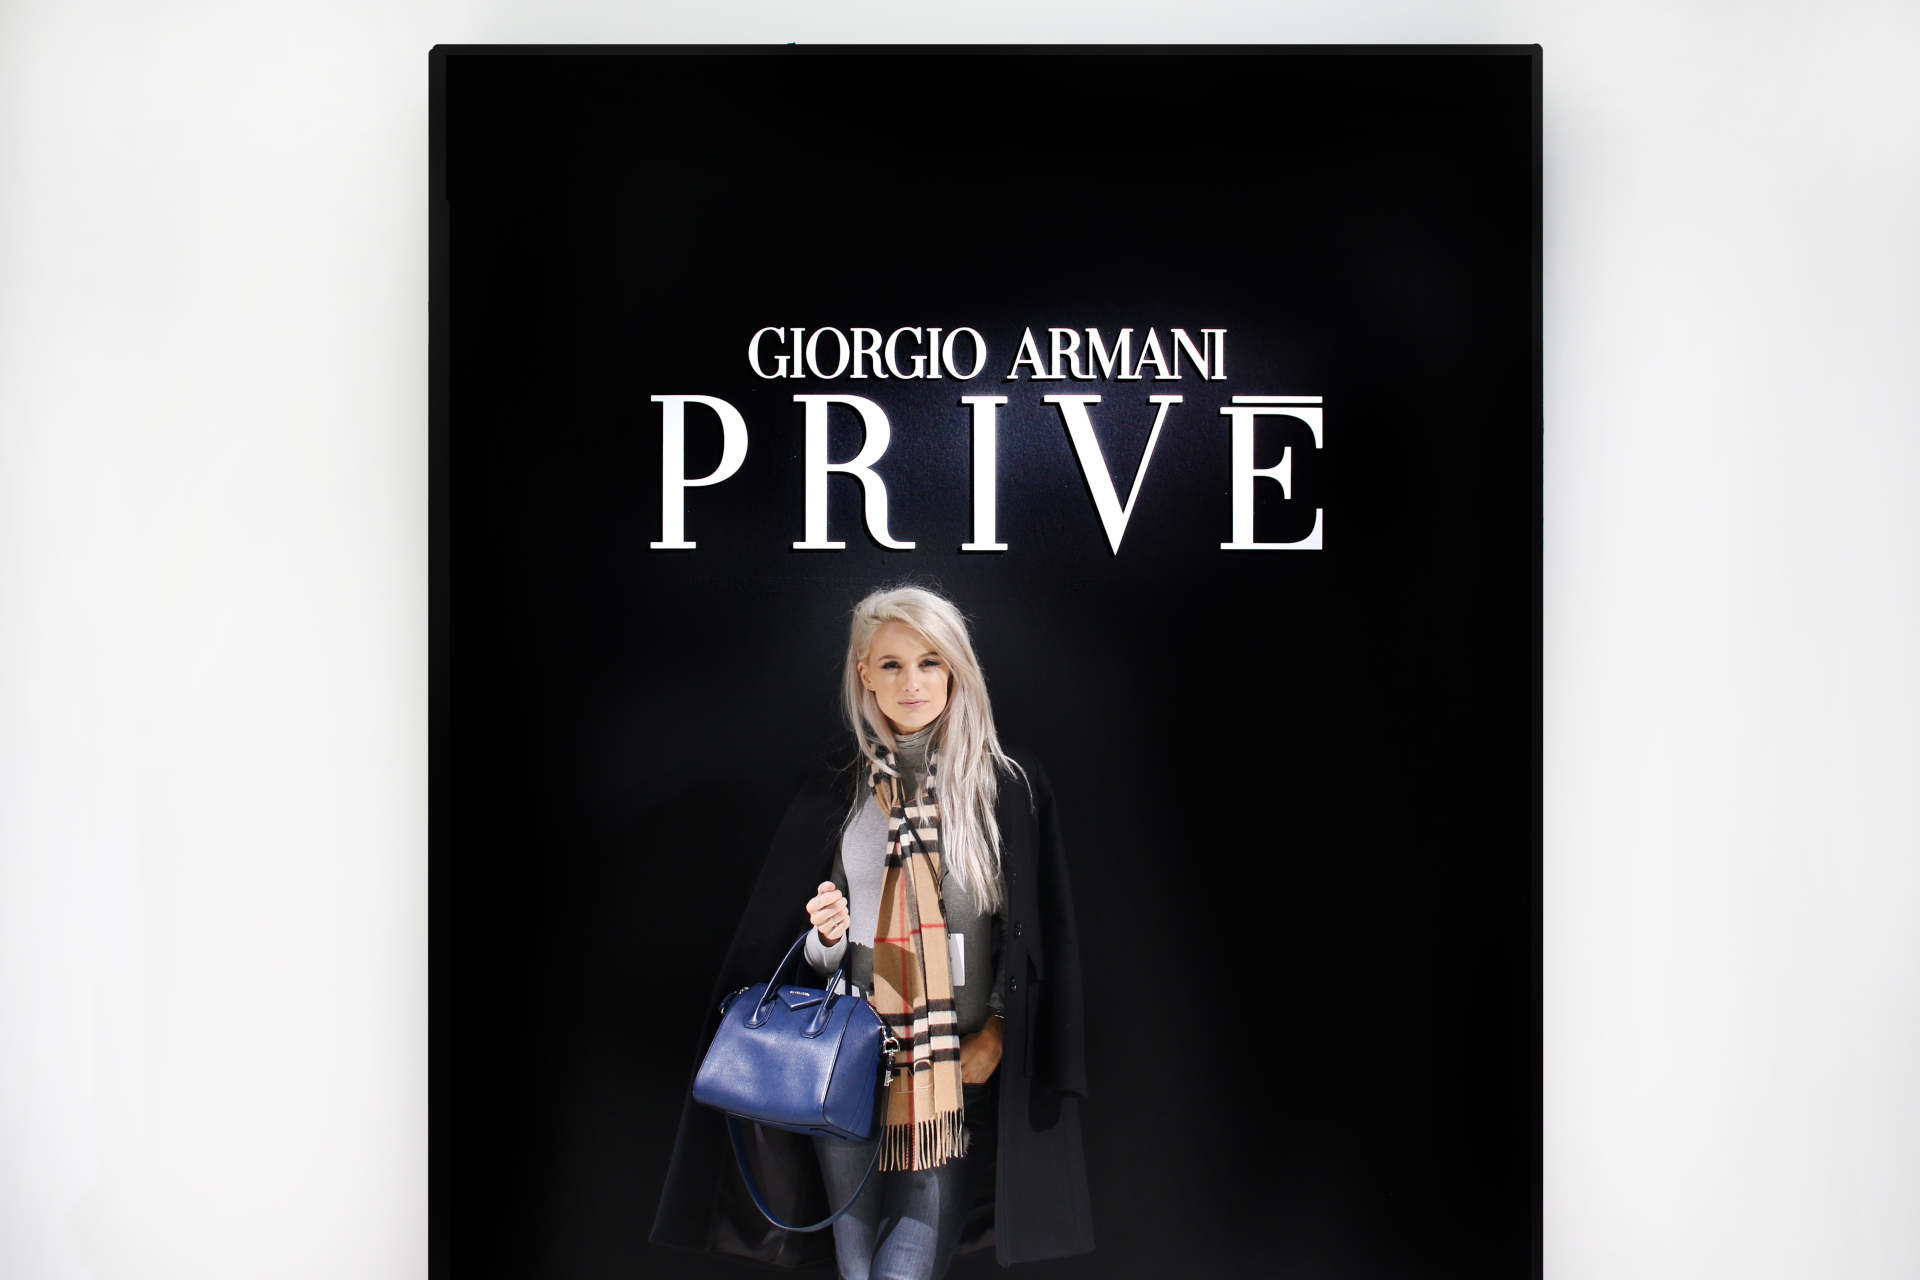 giorgio armani prive beauty